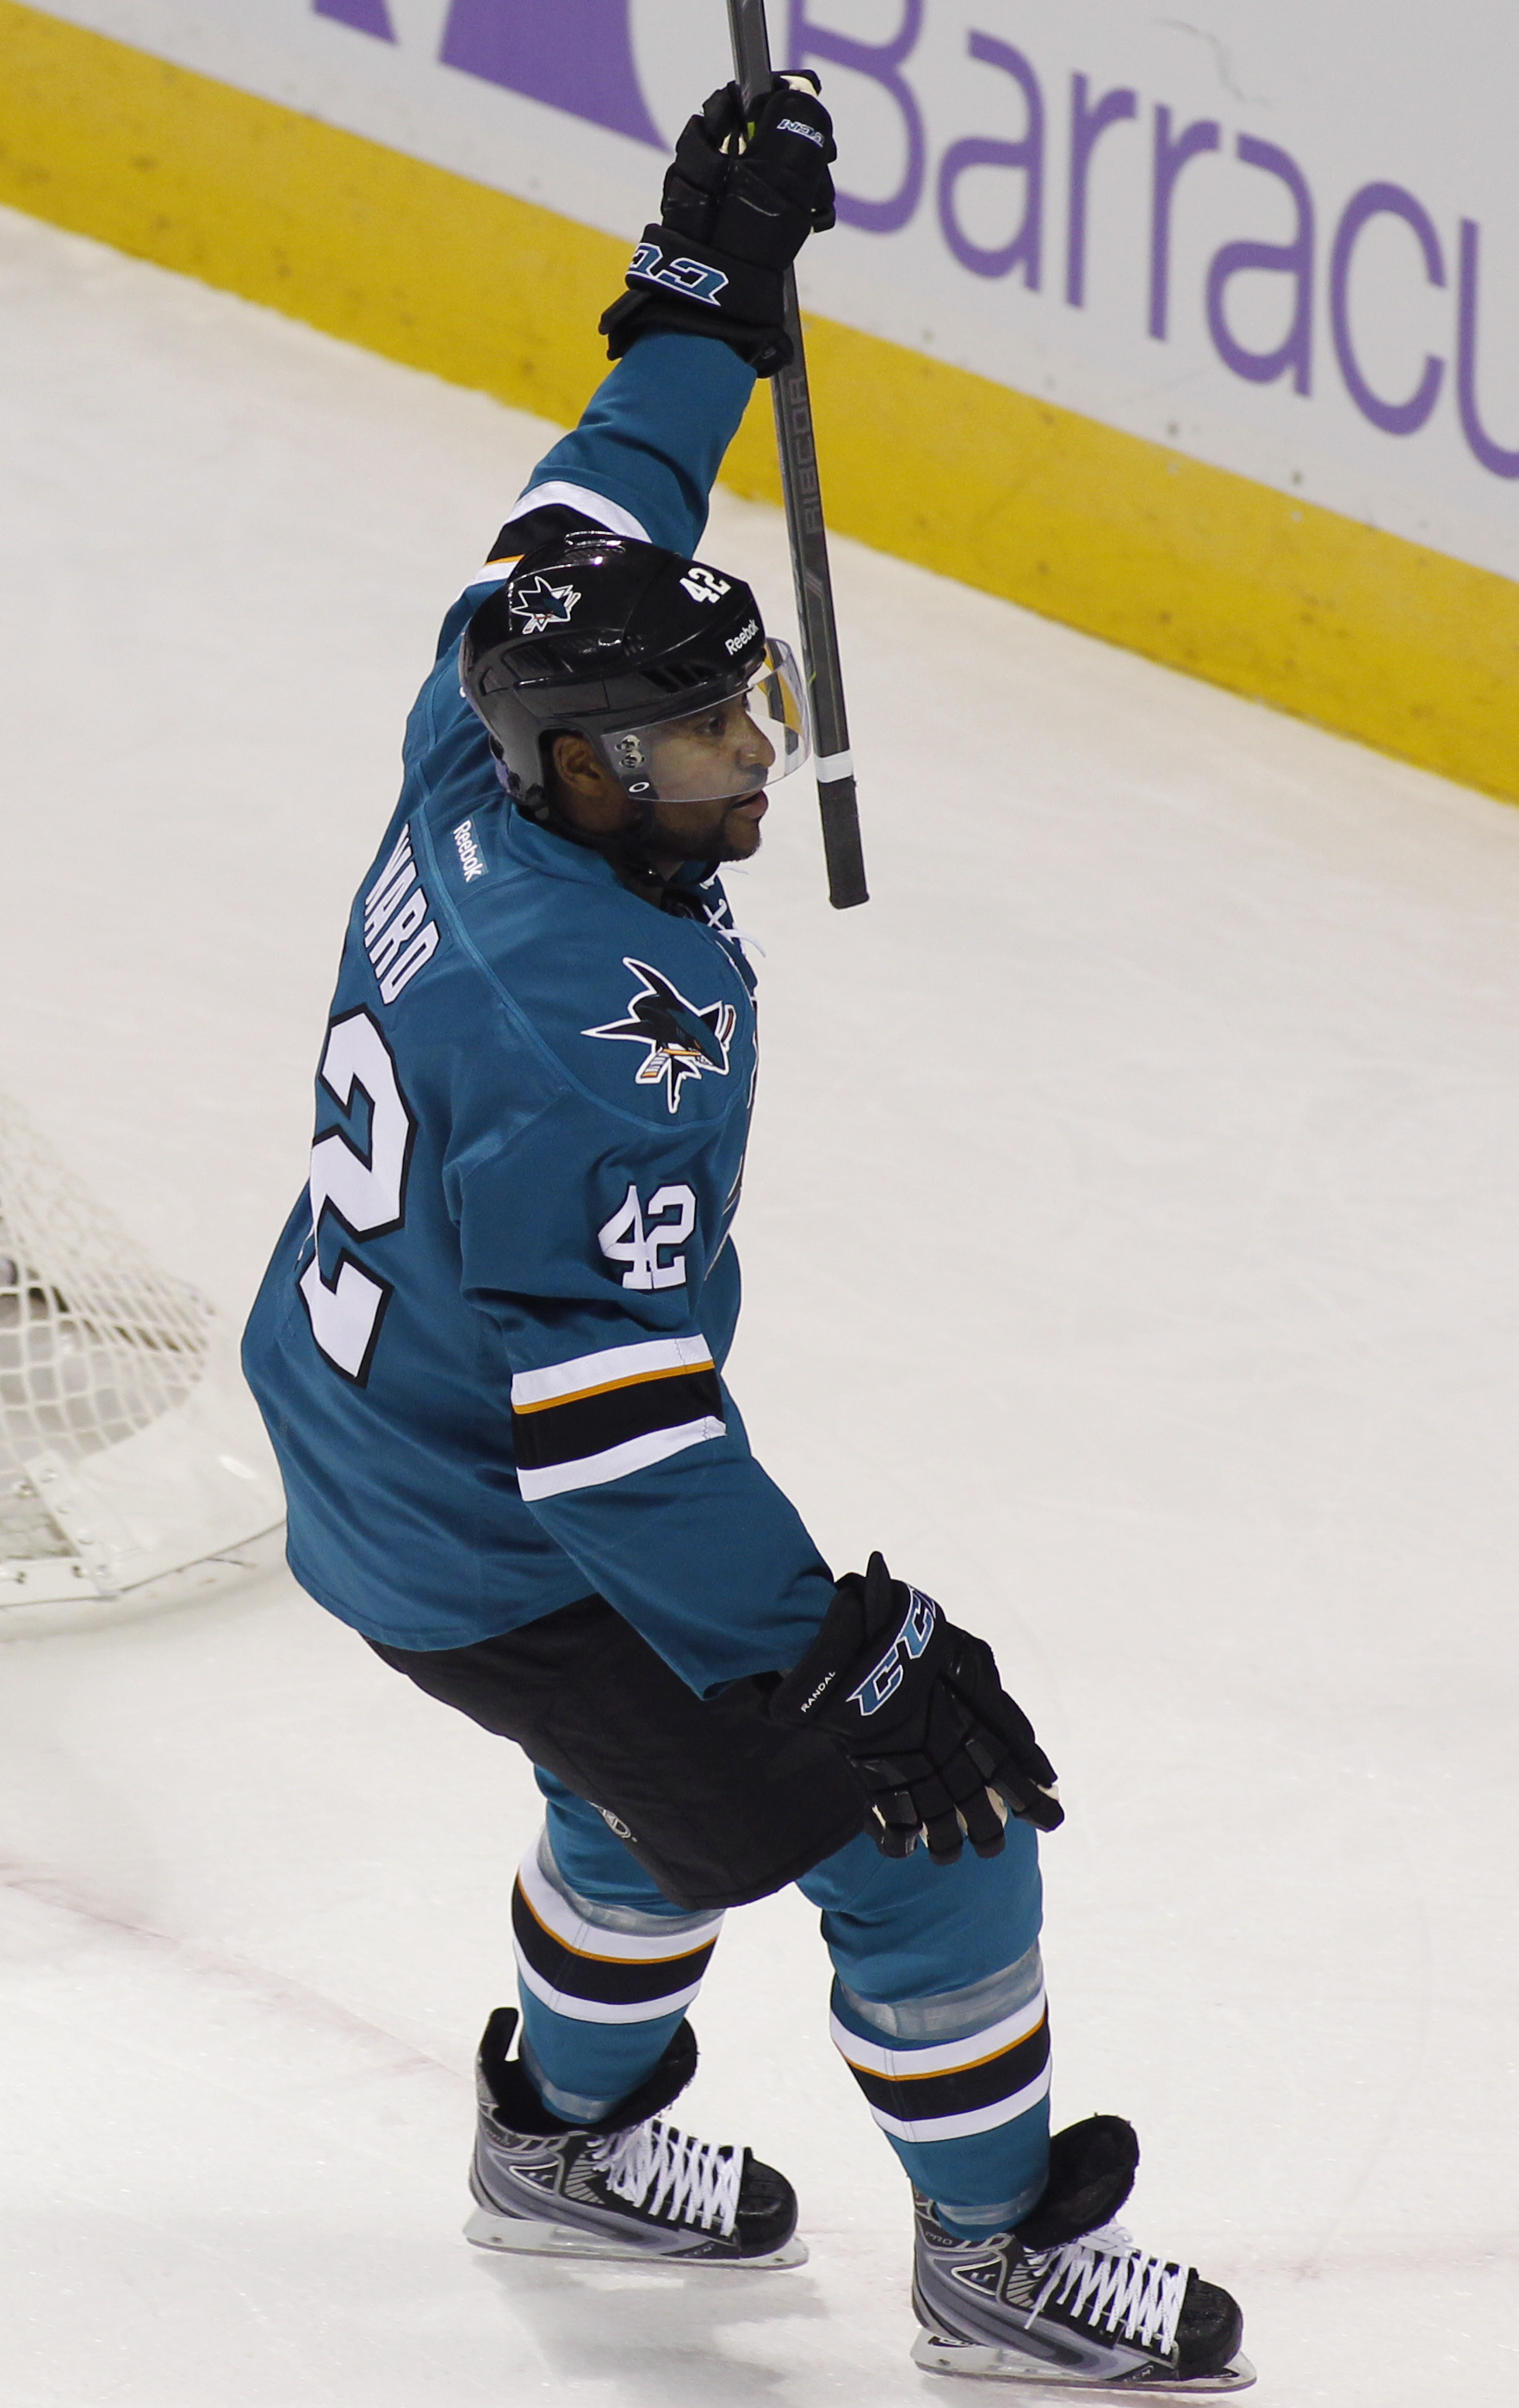 San Jose Sharks' Joel Ward reacts after scoring a goal against the Carolina Hurricanes during the first period of an NHL hockey game, Saturday, Oct. 24, 2015, in San Jose, Calif. (AP Photo/George Nikitin)